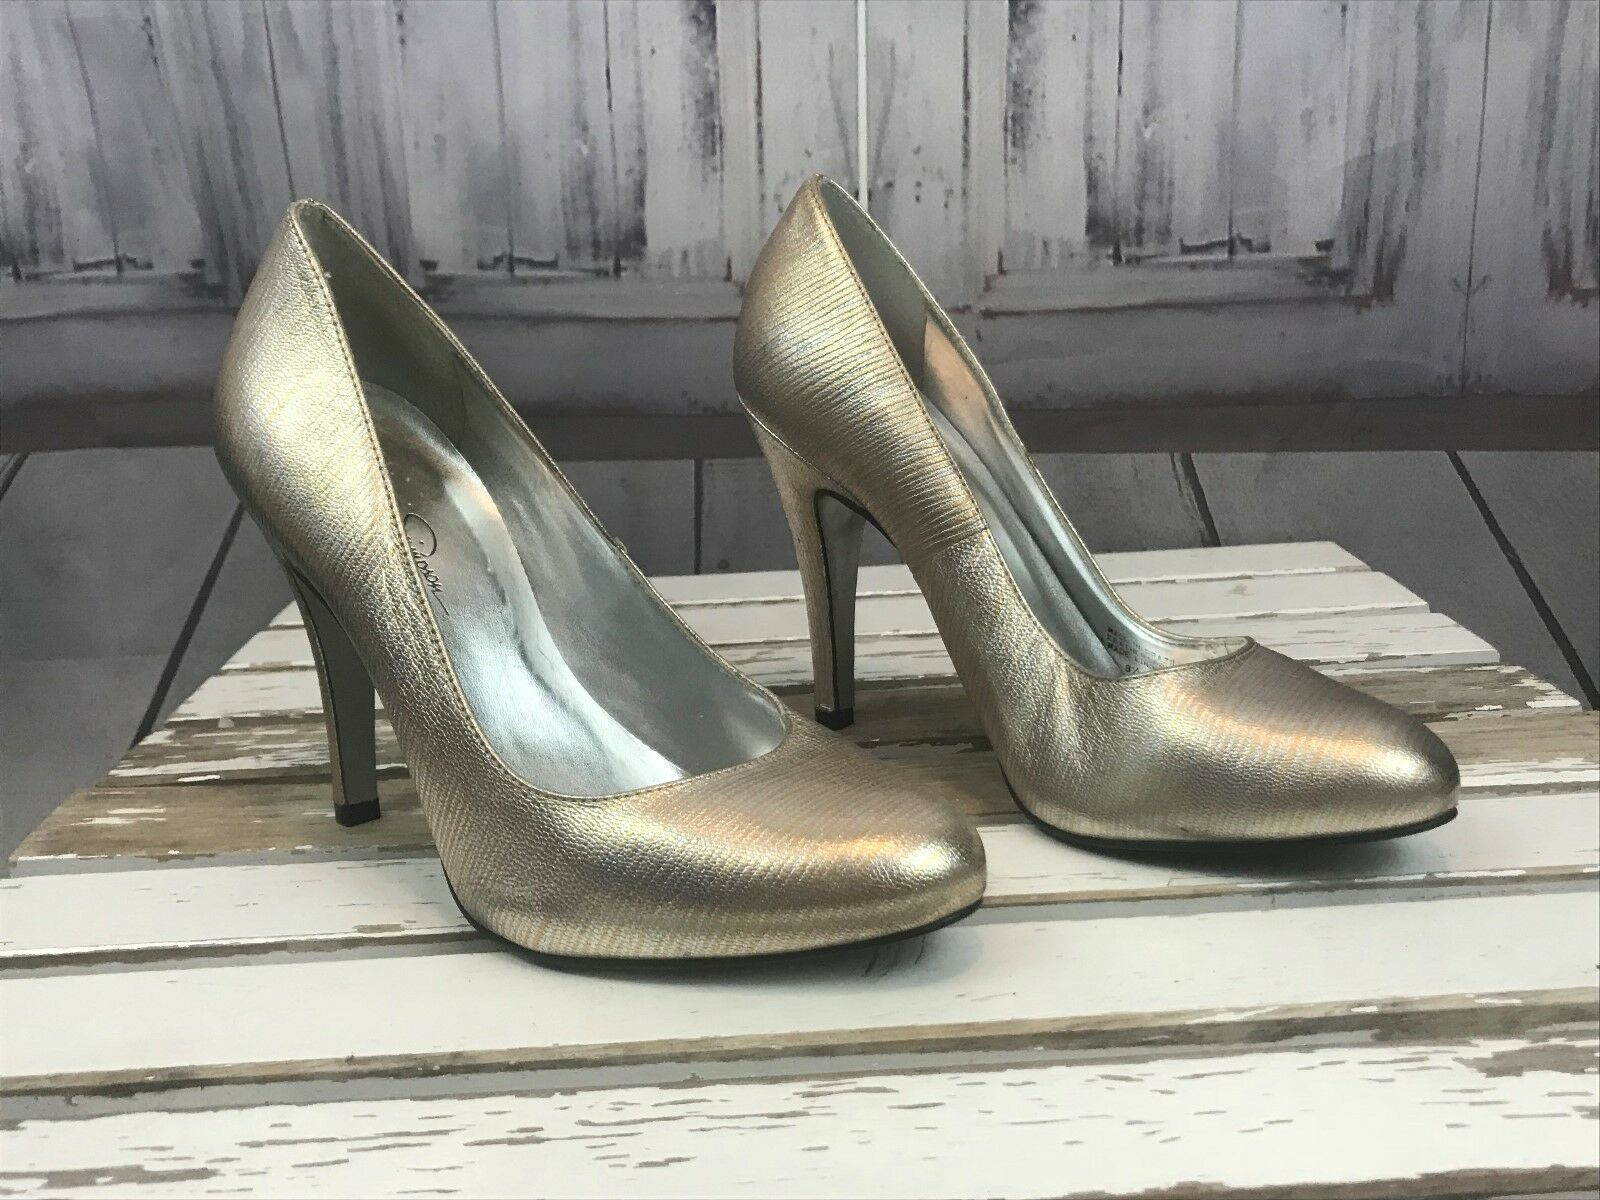 Jessica Simpson Silver Heels Formal Prom Homecoming Dress Up 4 Inch Size 8.5